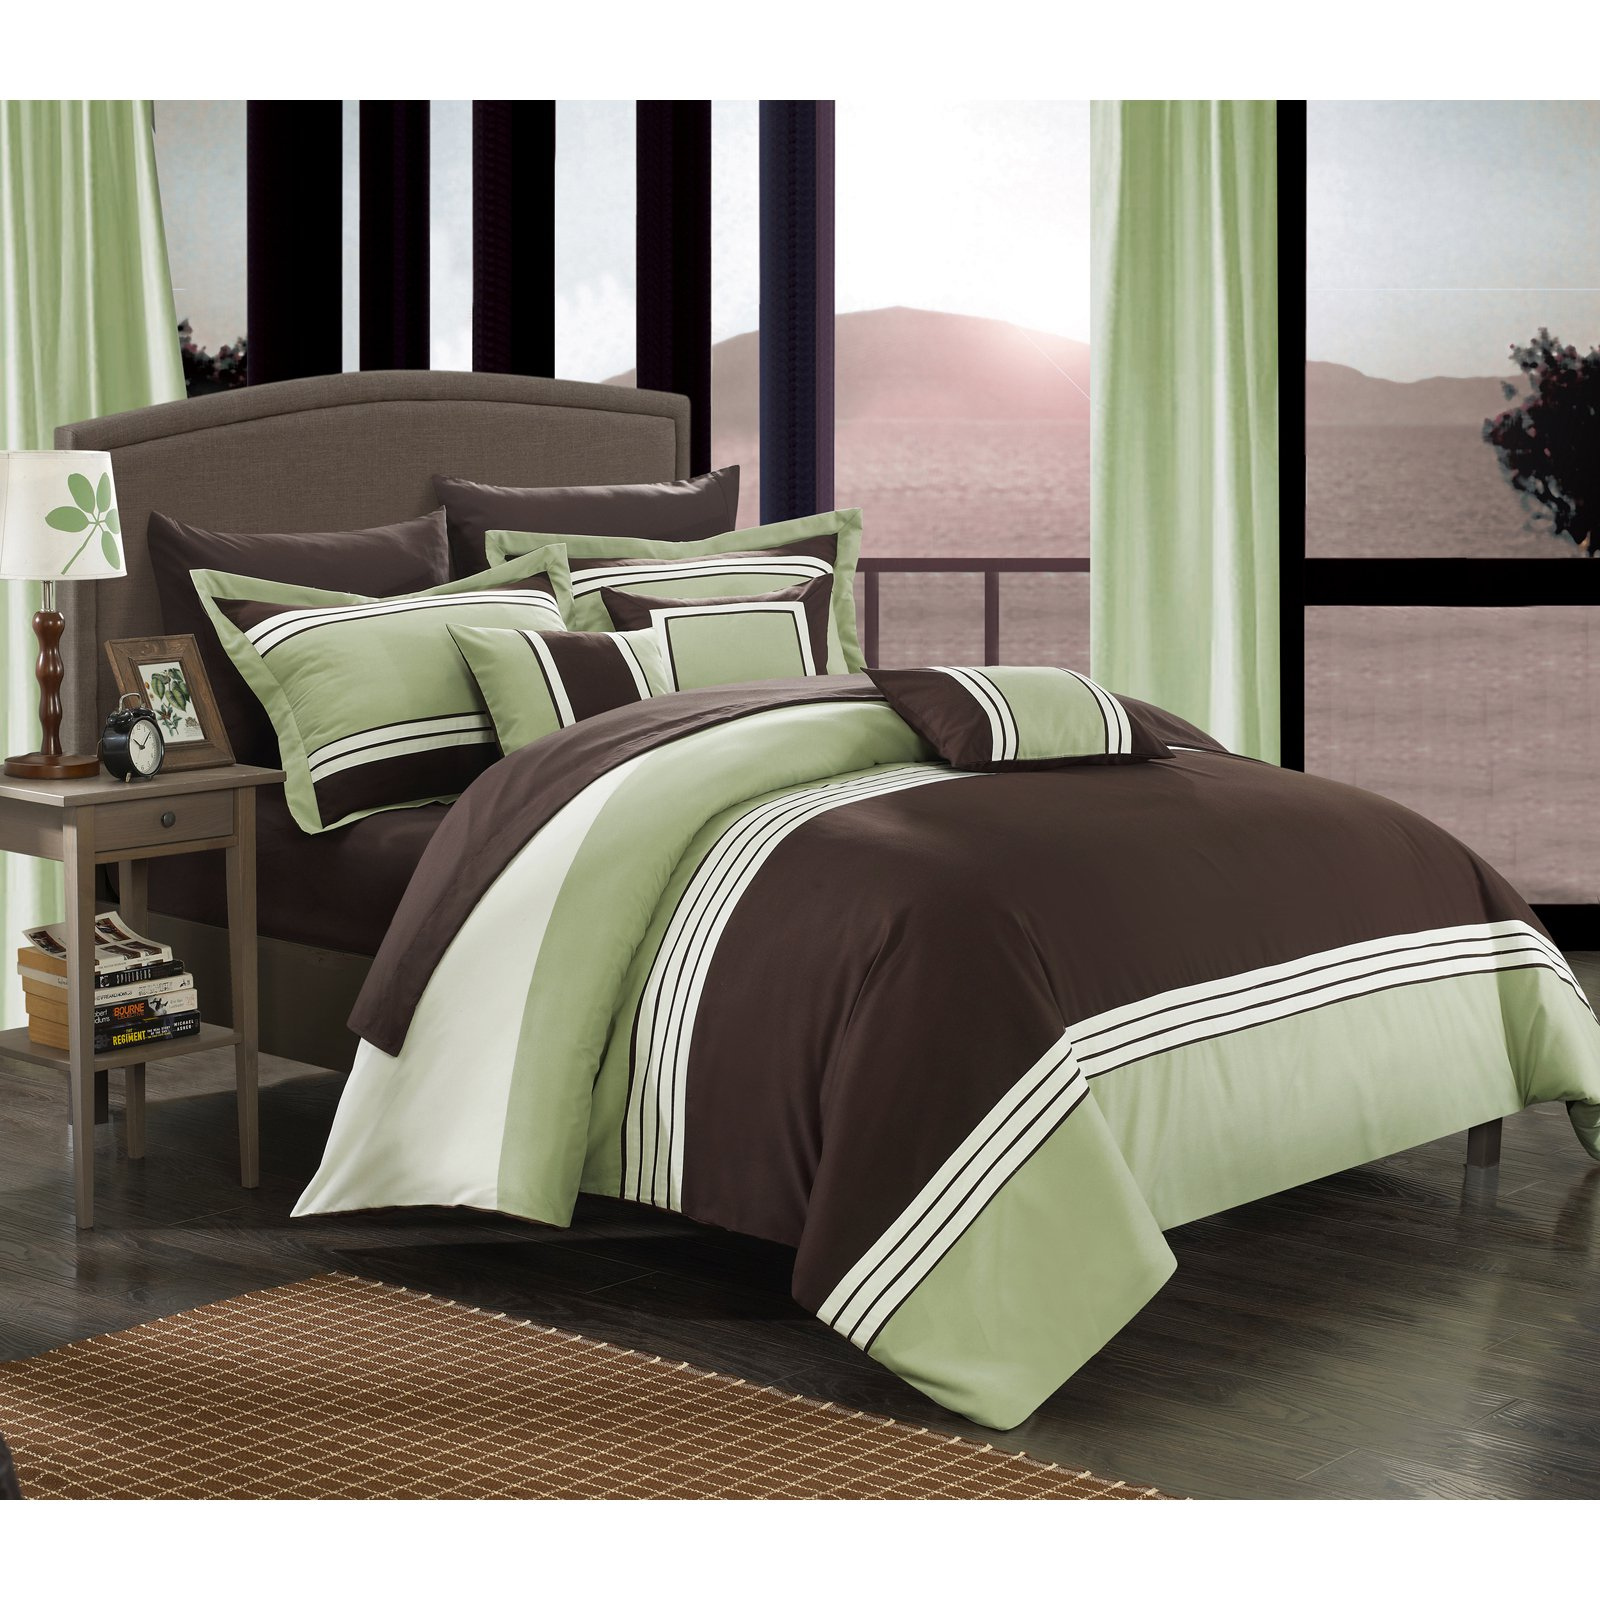 Chic Home 10-Piece Falconia Hotel Collection Striped Patchwork Bed In a Bag Comforter Set